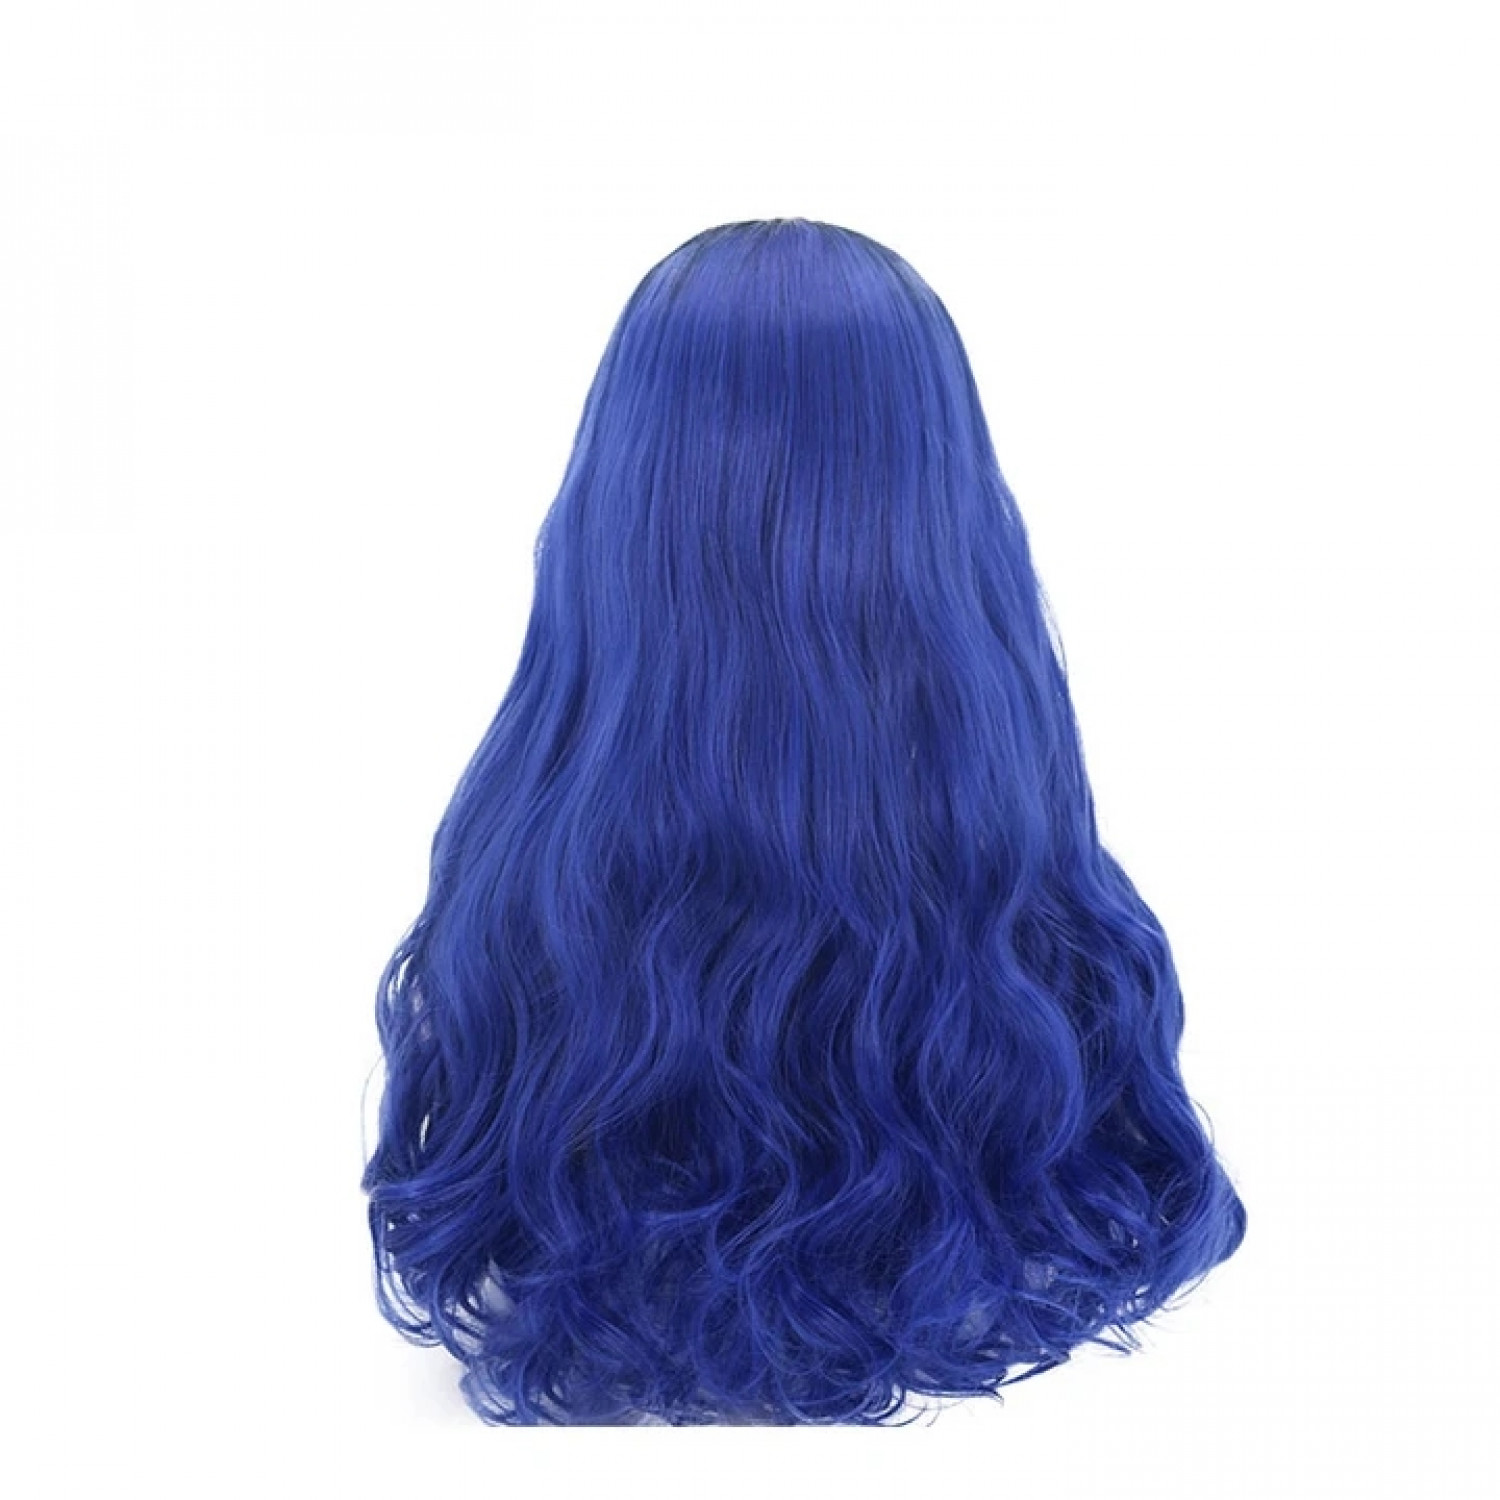 Descendants 3 Evie Blue Movie Cosplay Wig